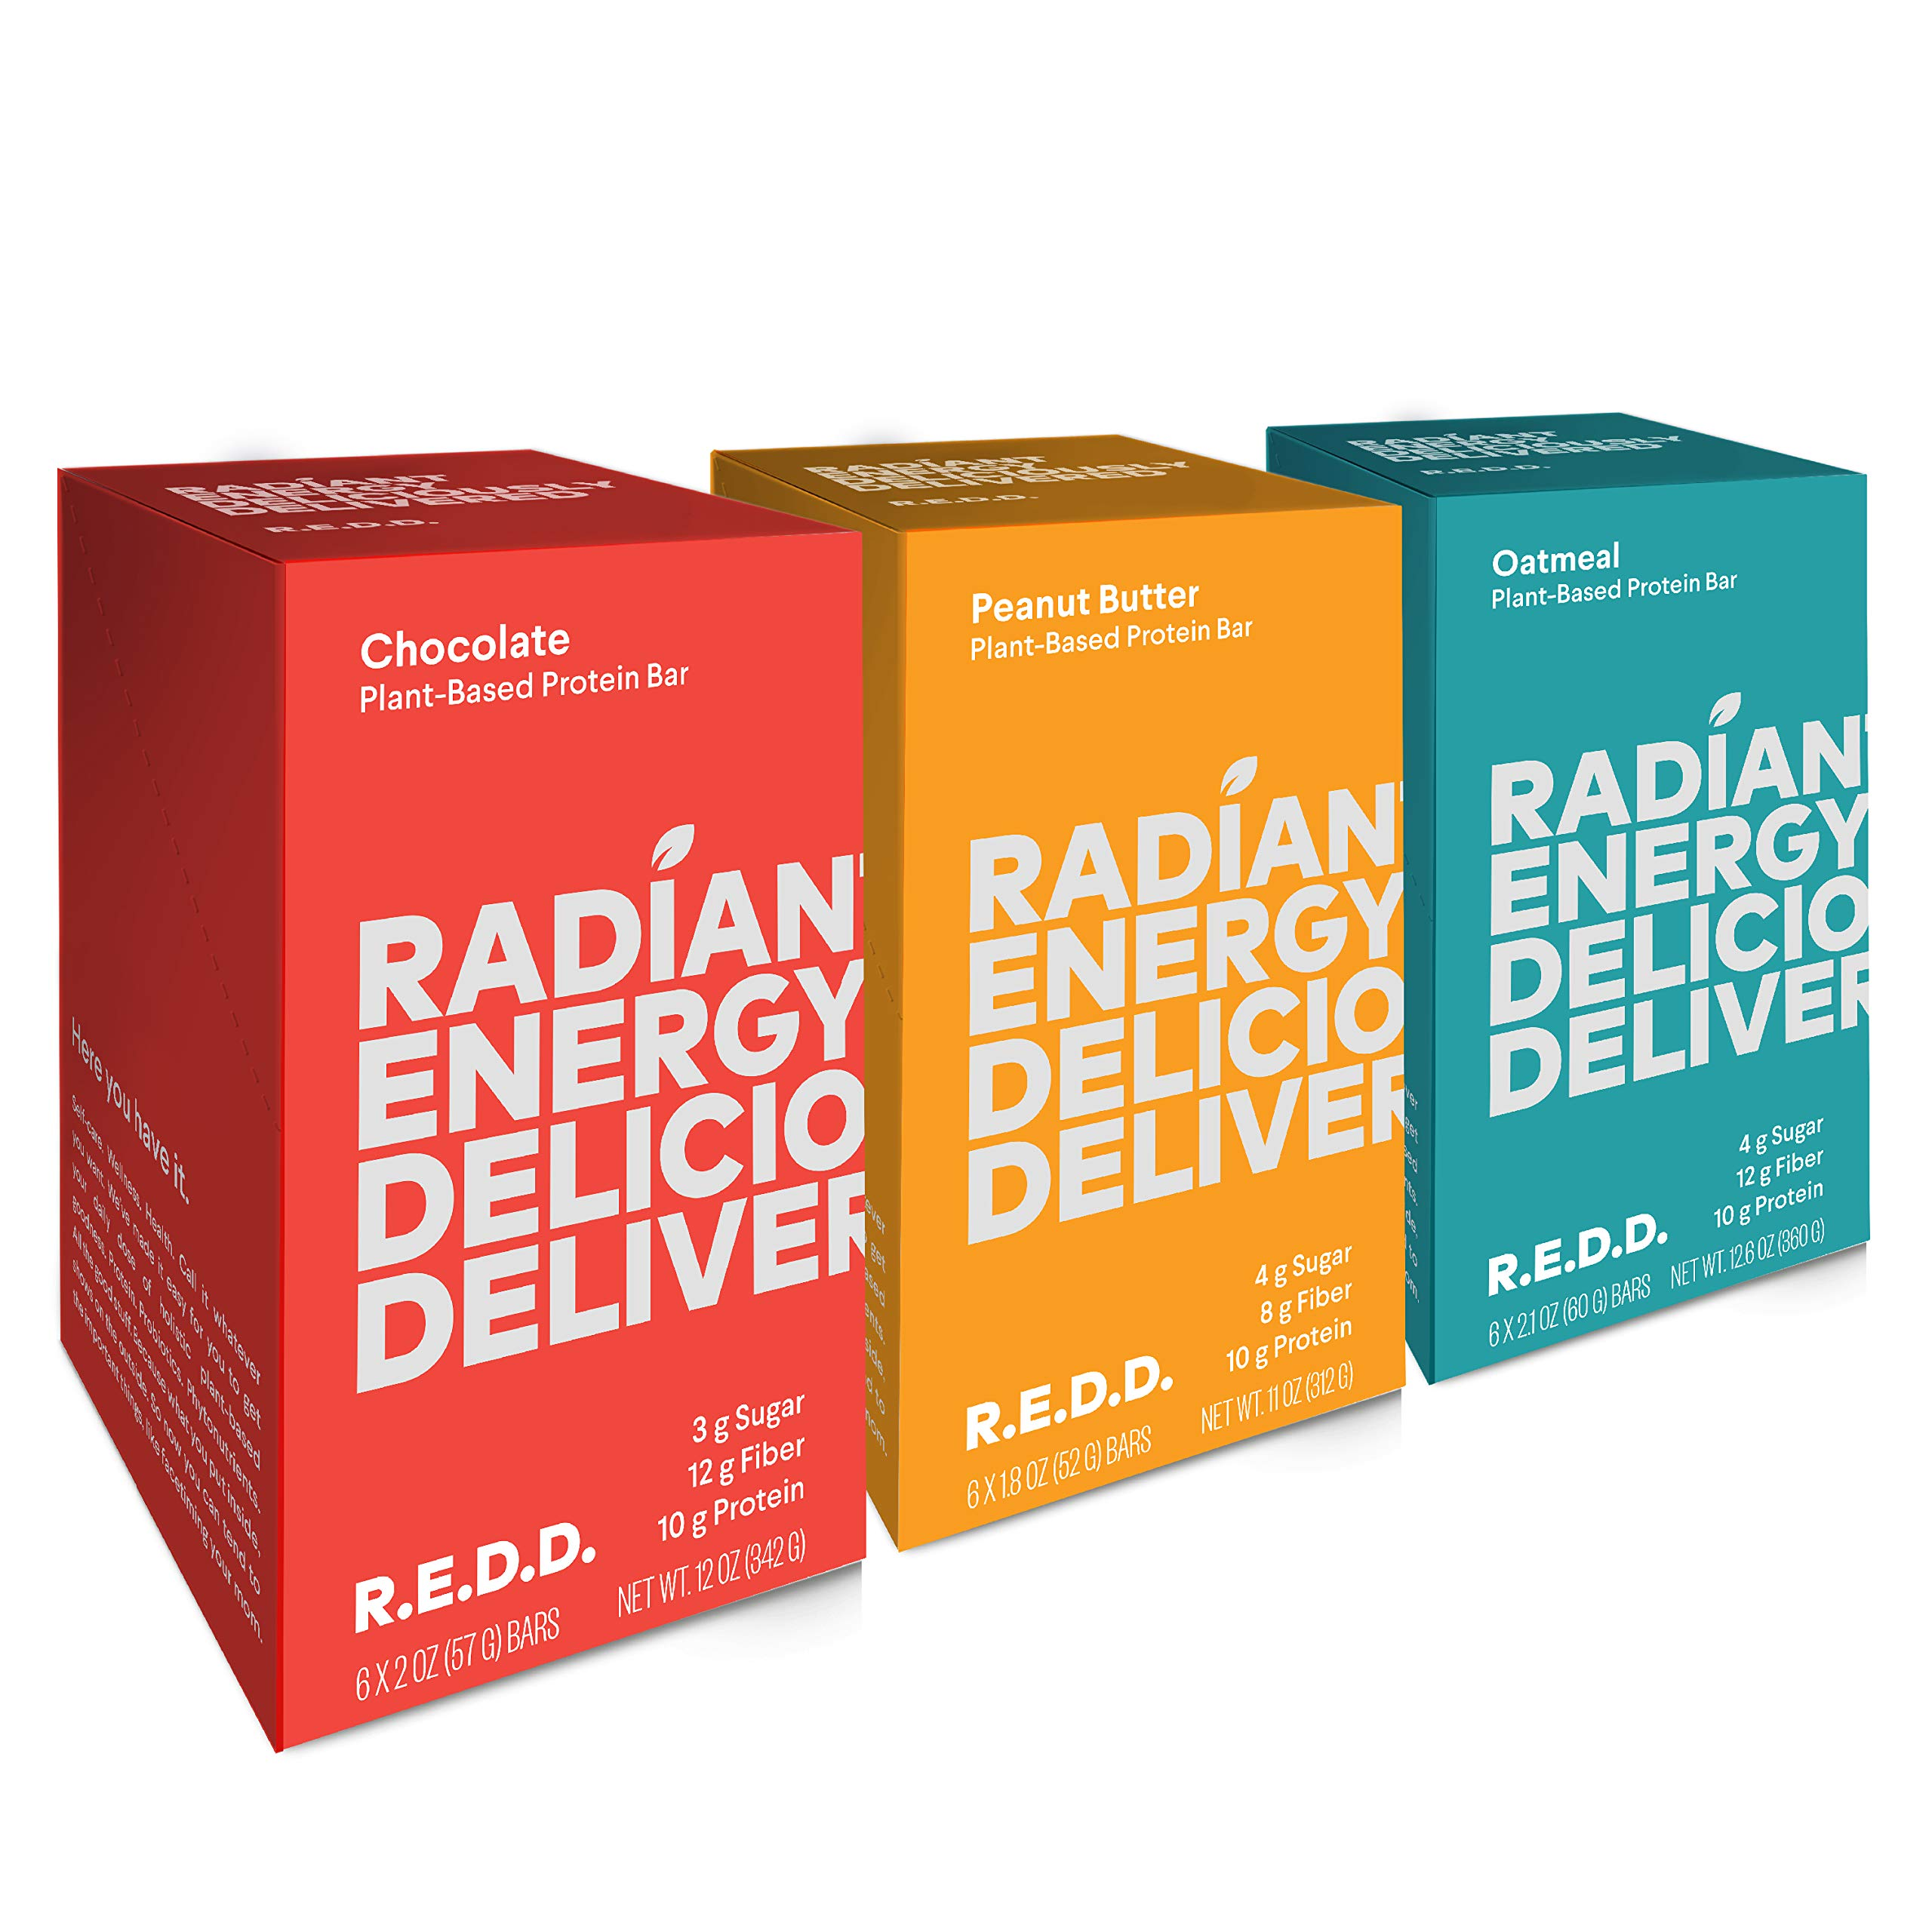 REDD Plant Based Protein Bar 18 Bar Variety Pack - 6 Chocolate, 6 Oatmeal, 6 Peanut Butter